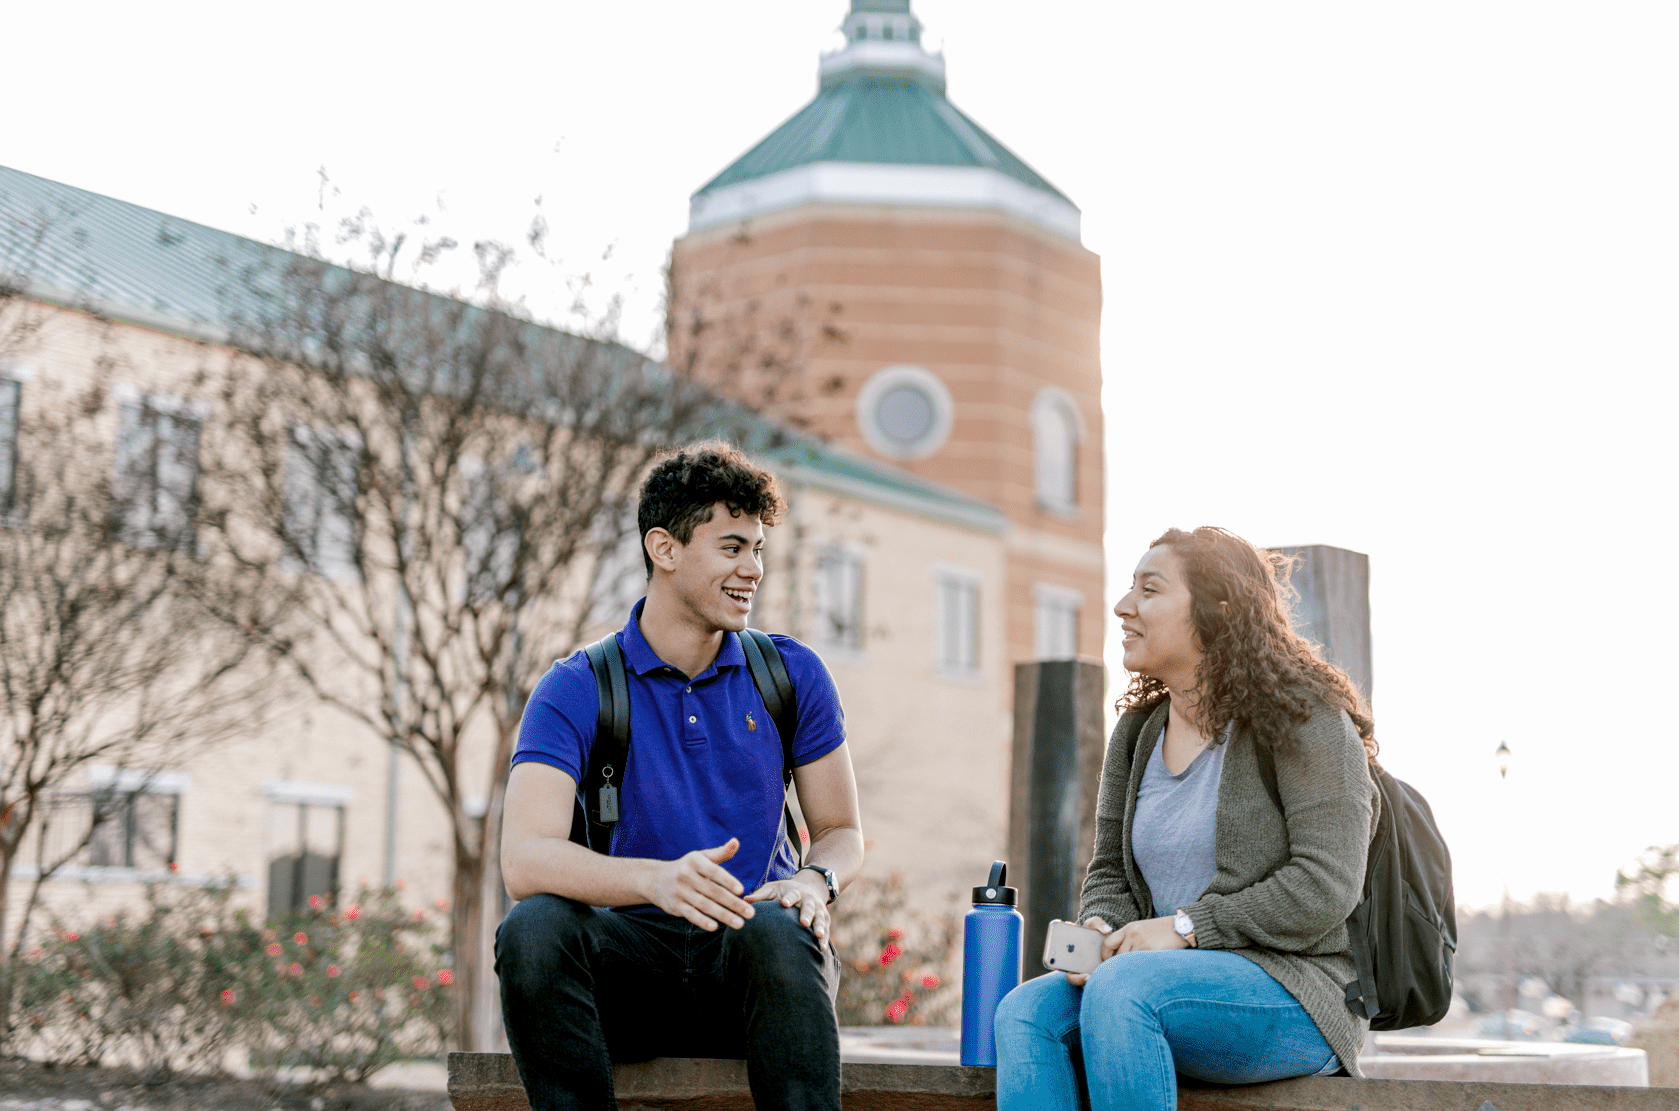 Two students sit together outside while looking at each other, talking and laughing